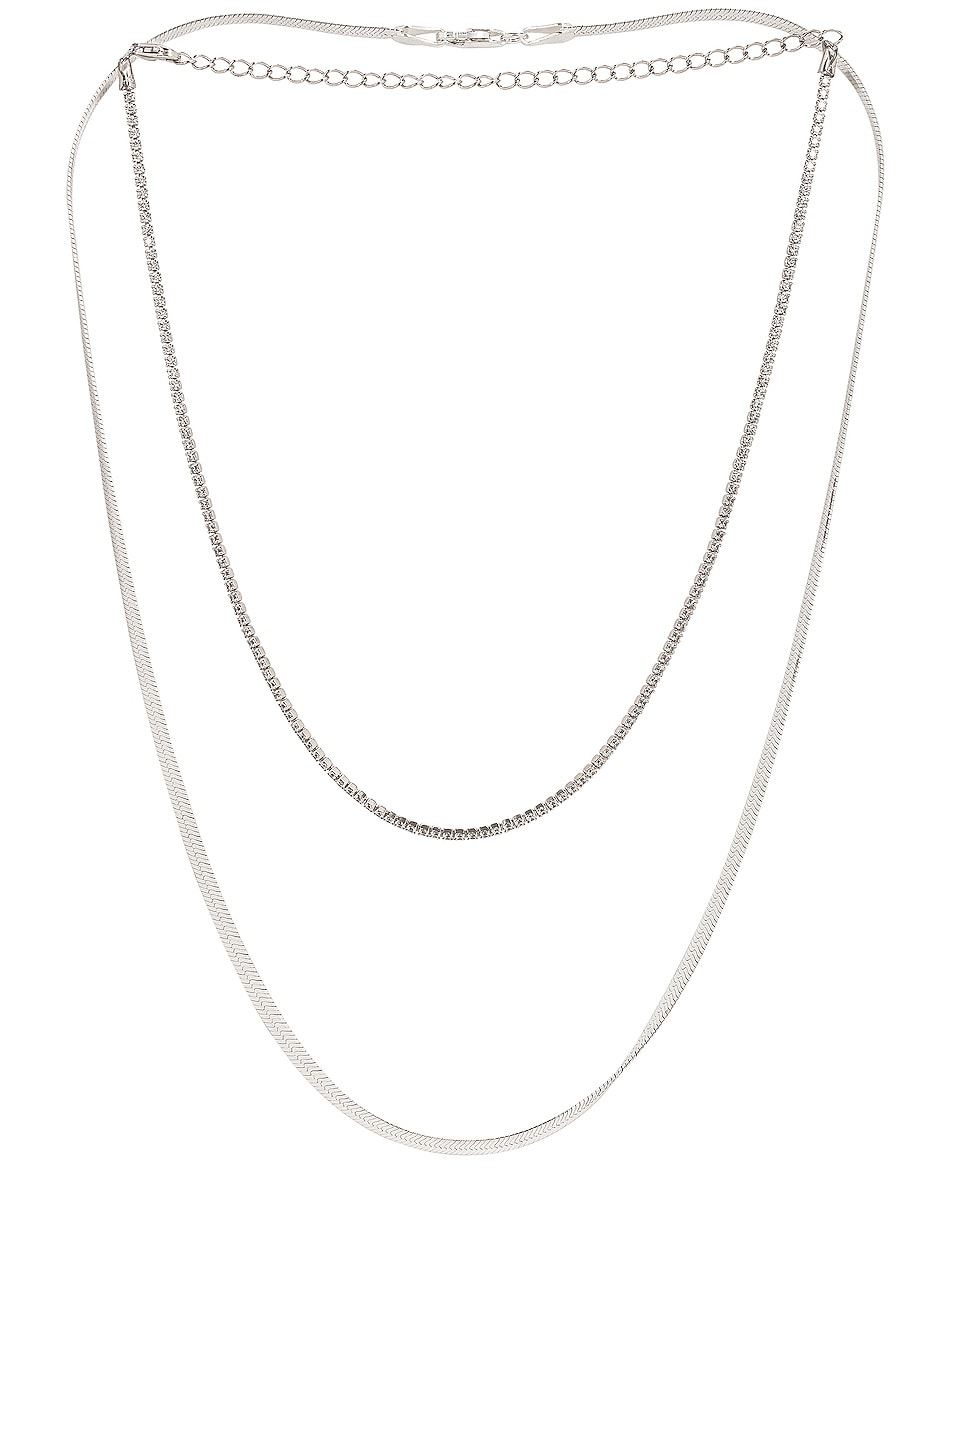 Image 1 of Jordan Road Jewelry for FWRD Gramercy Necklace Stack in Silver